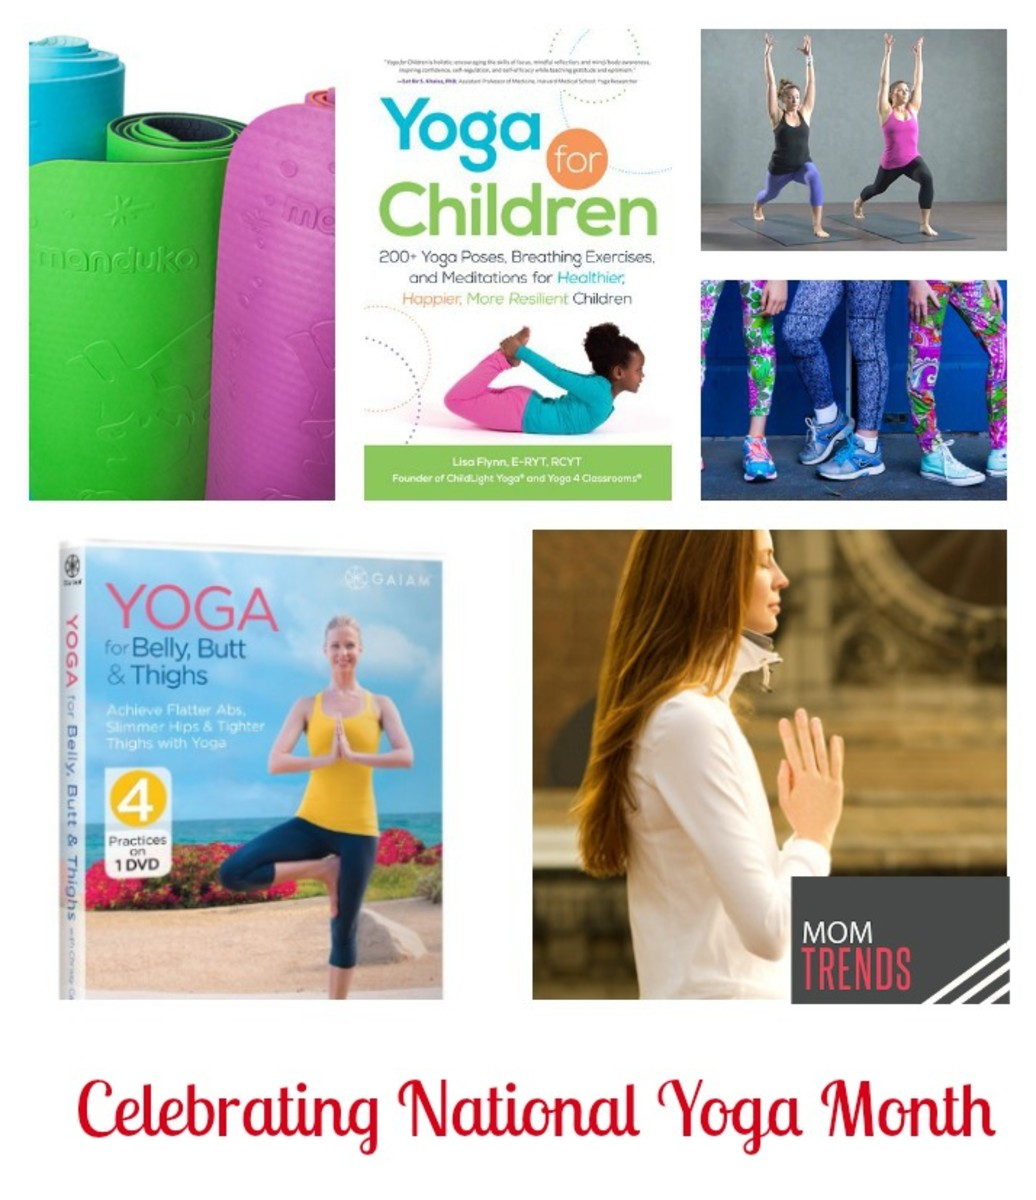 Celebrating National Yoga Month